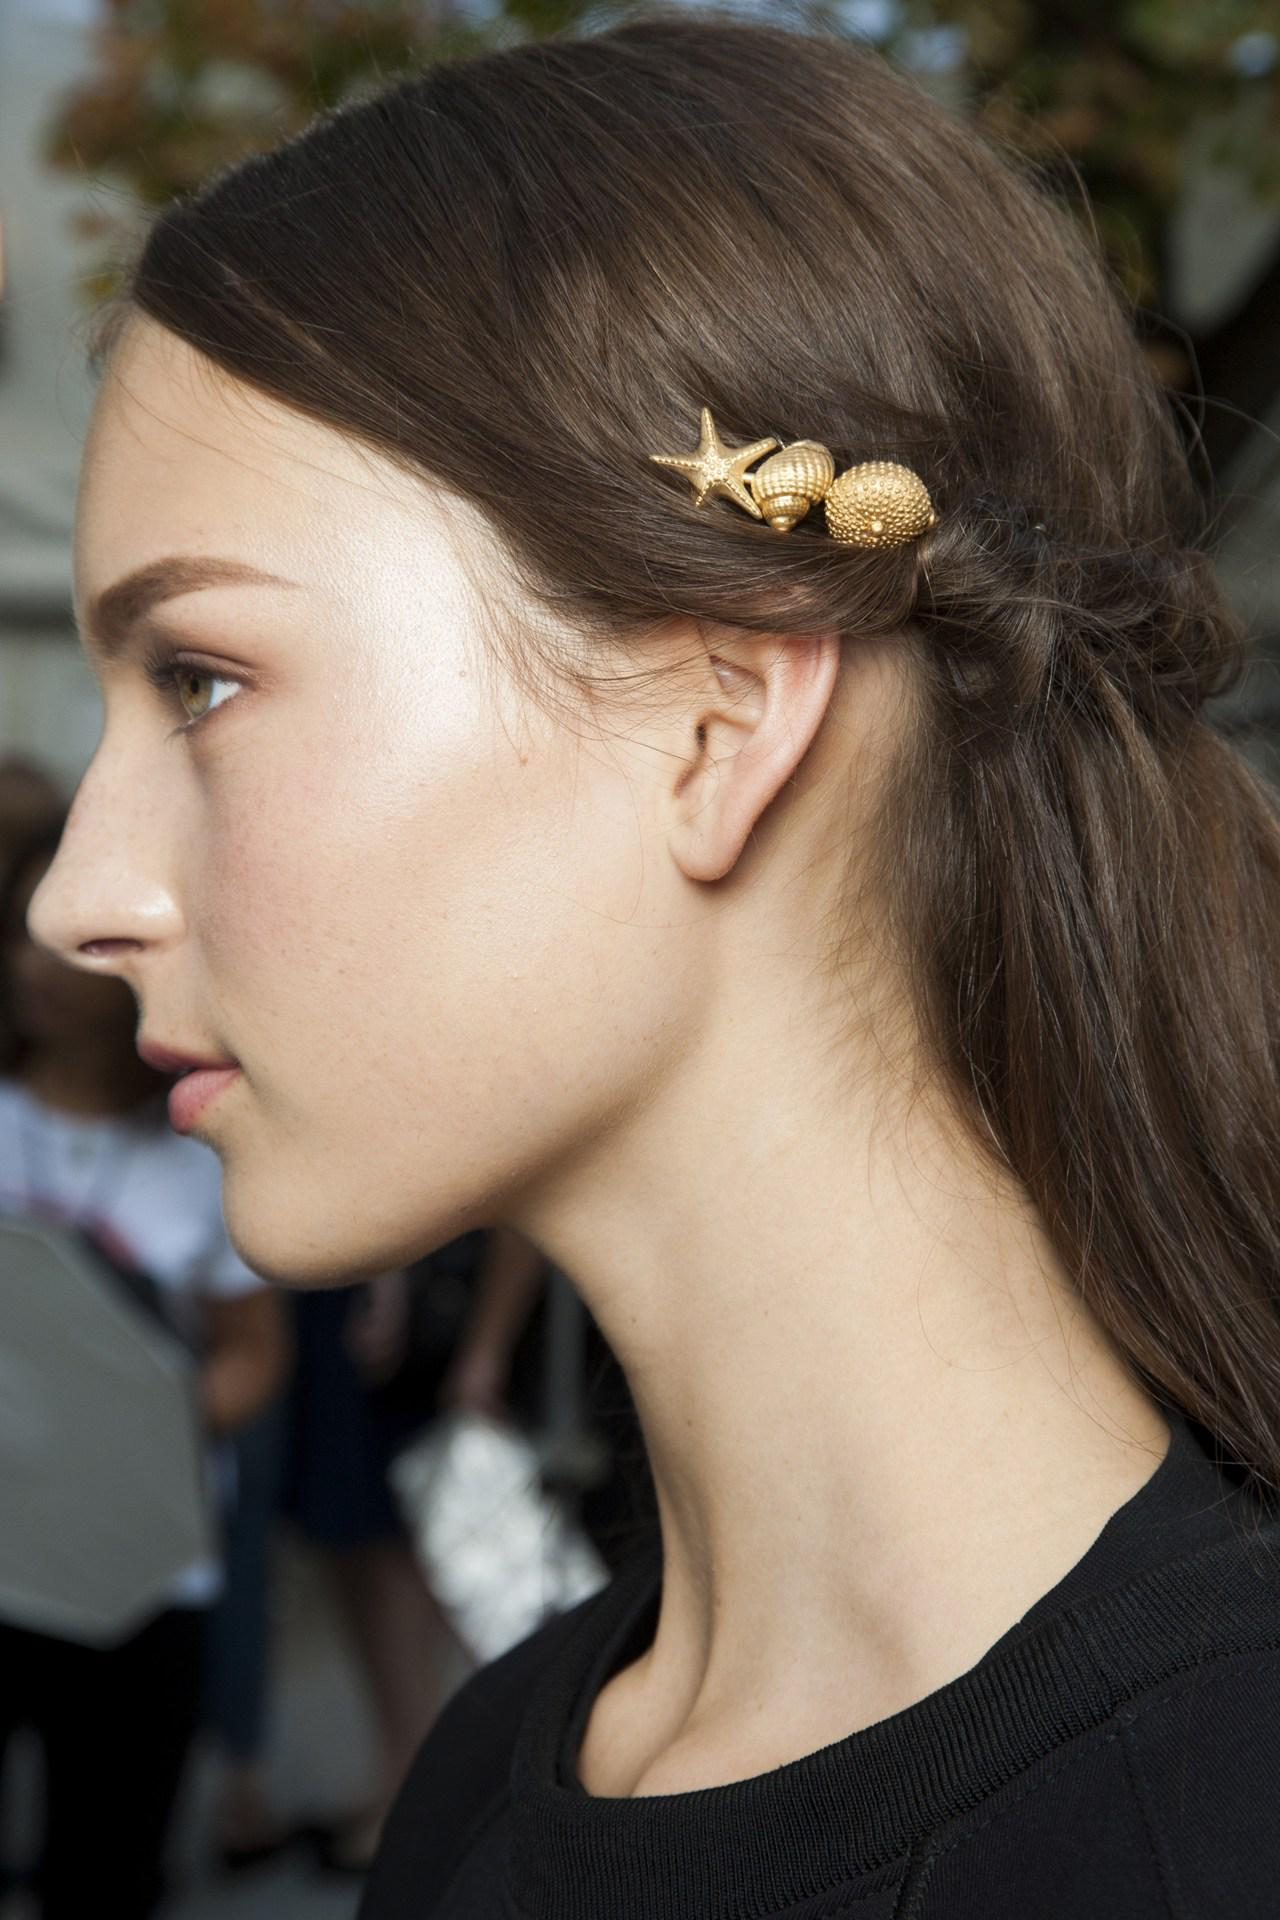 Wear your hair the @MaisonValentino way - adorned with golden seashells: http://t.co/RS9zAMh4rI http://t.co/gRFF24r0ZY